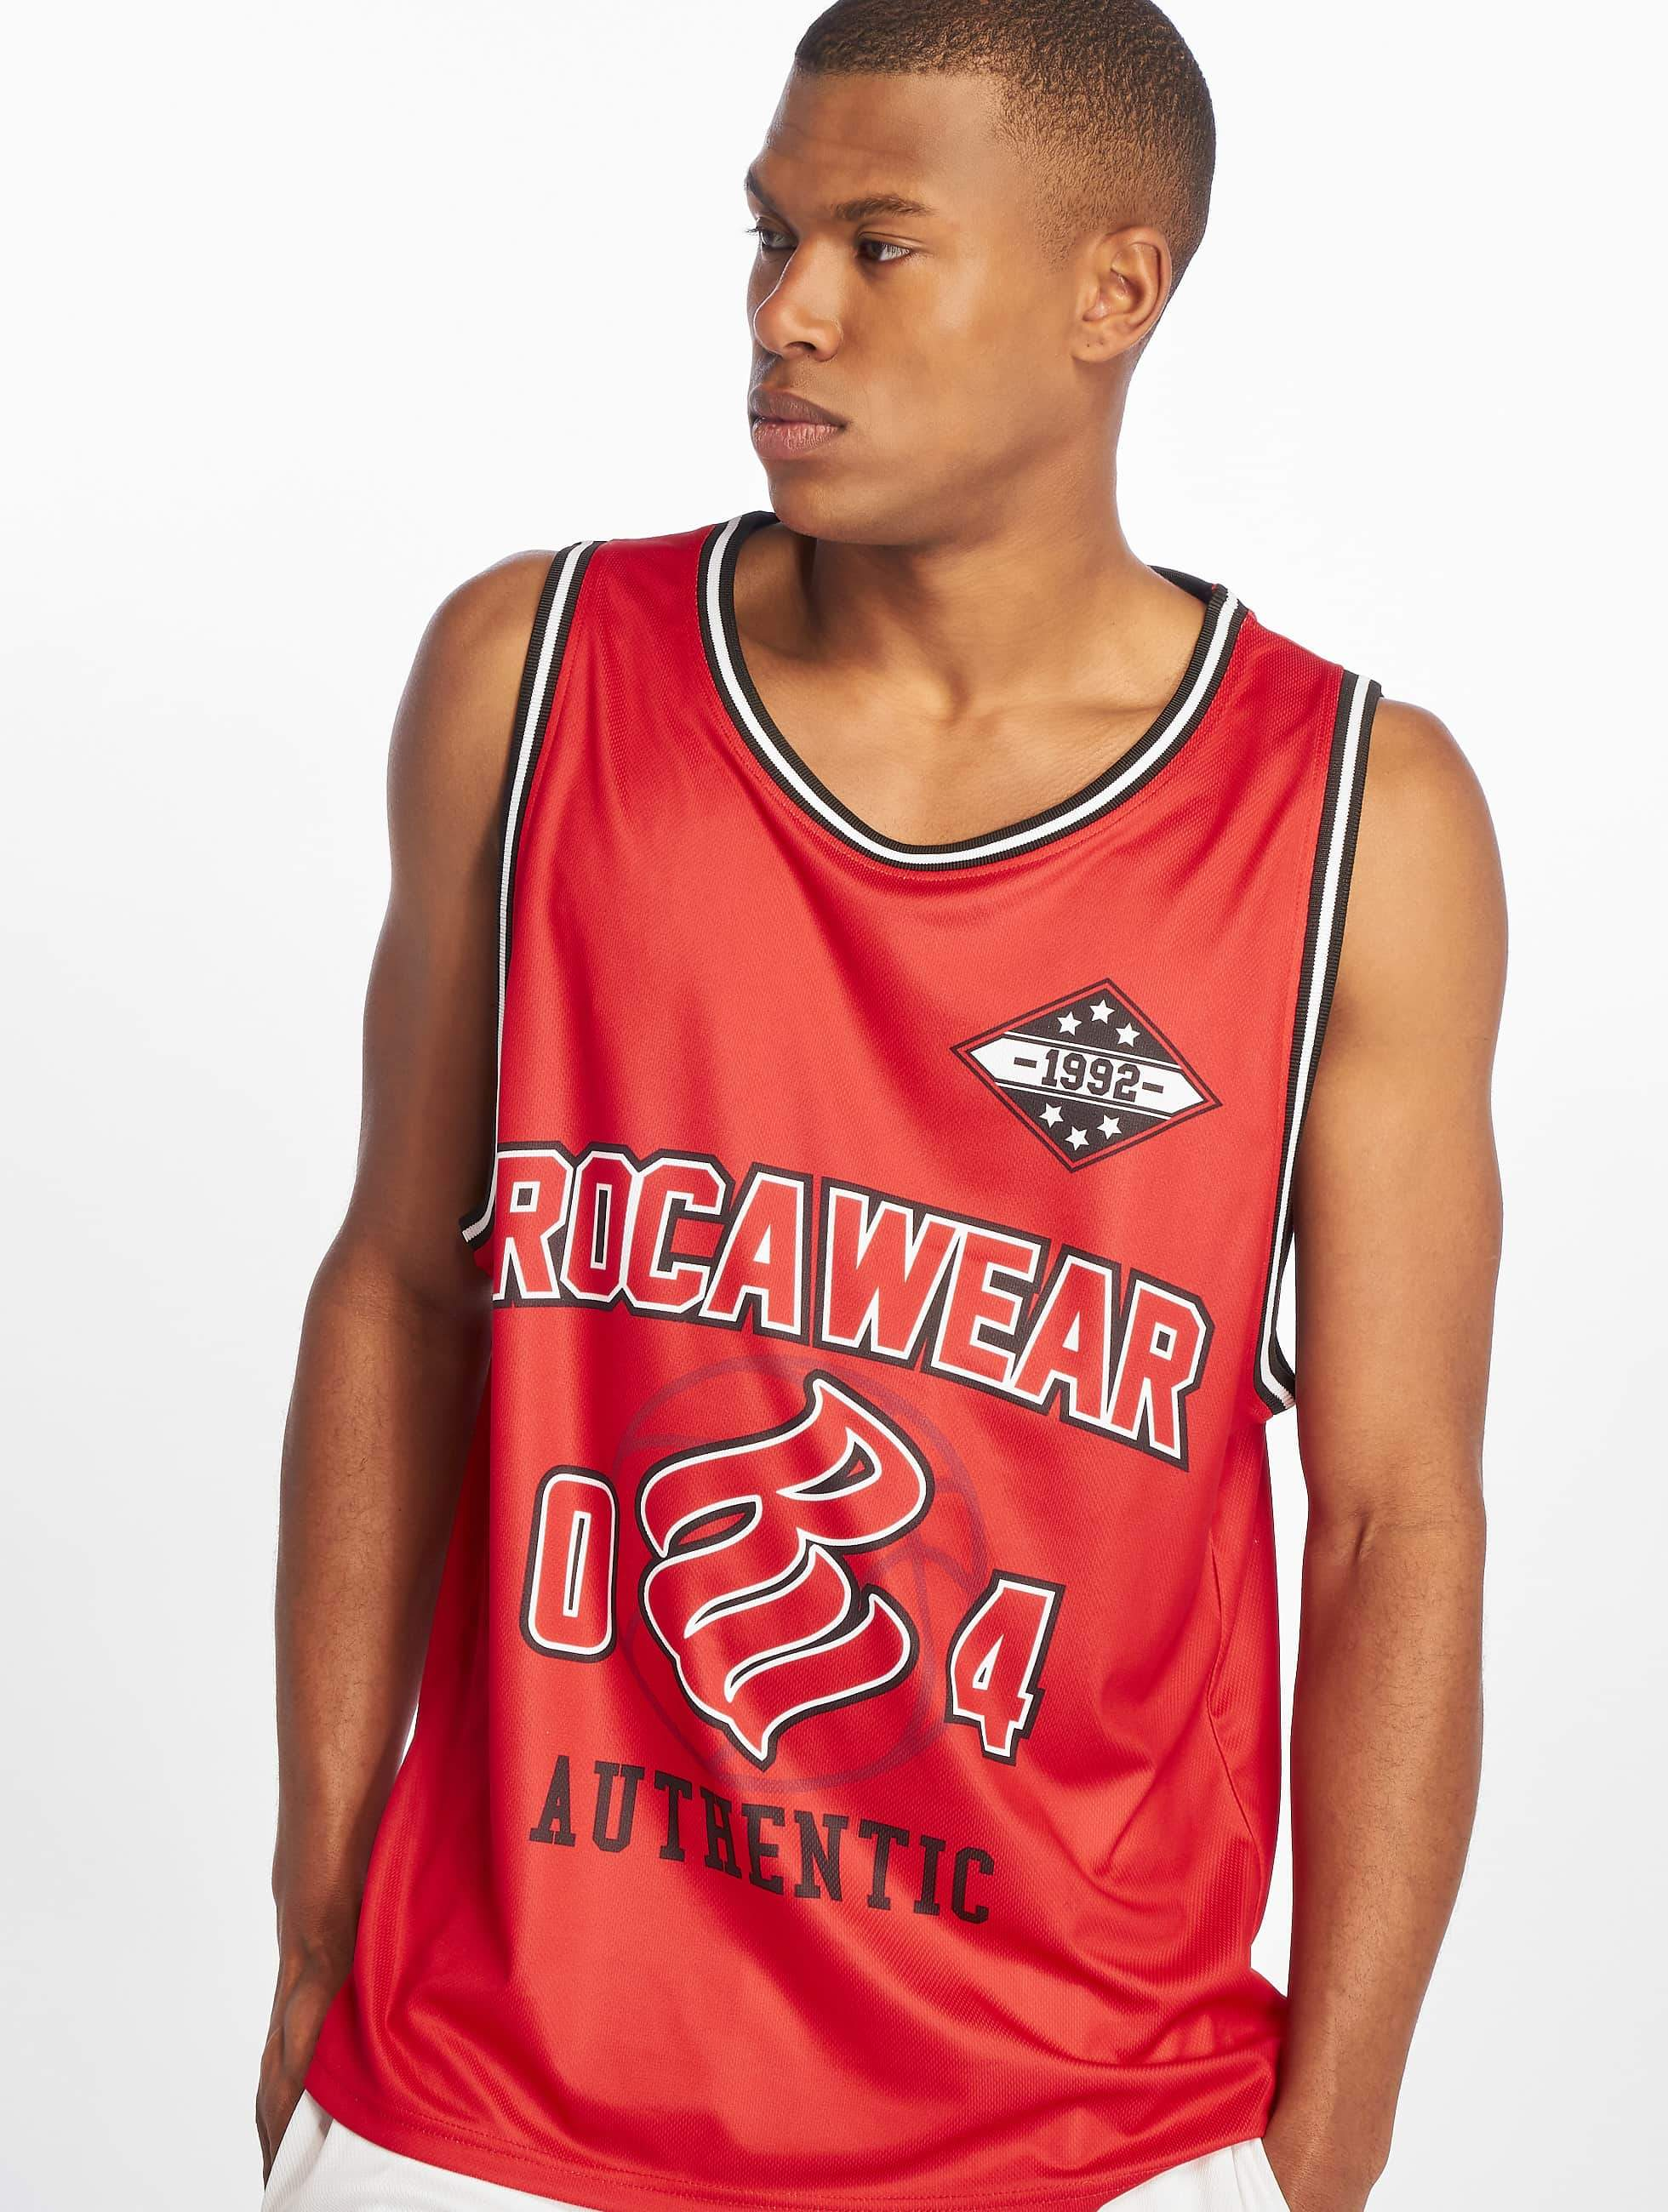 Rocawear / Tank Tops Authentic in red S